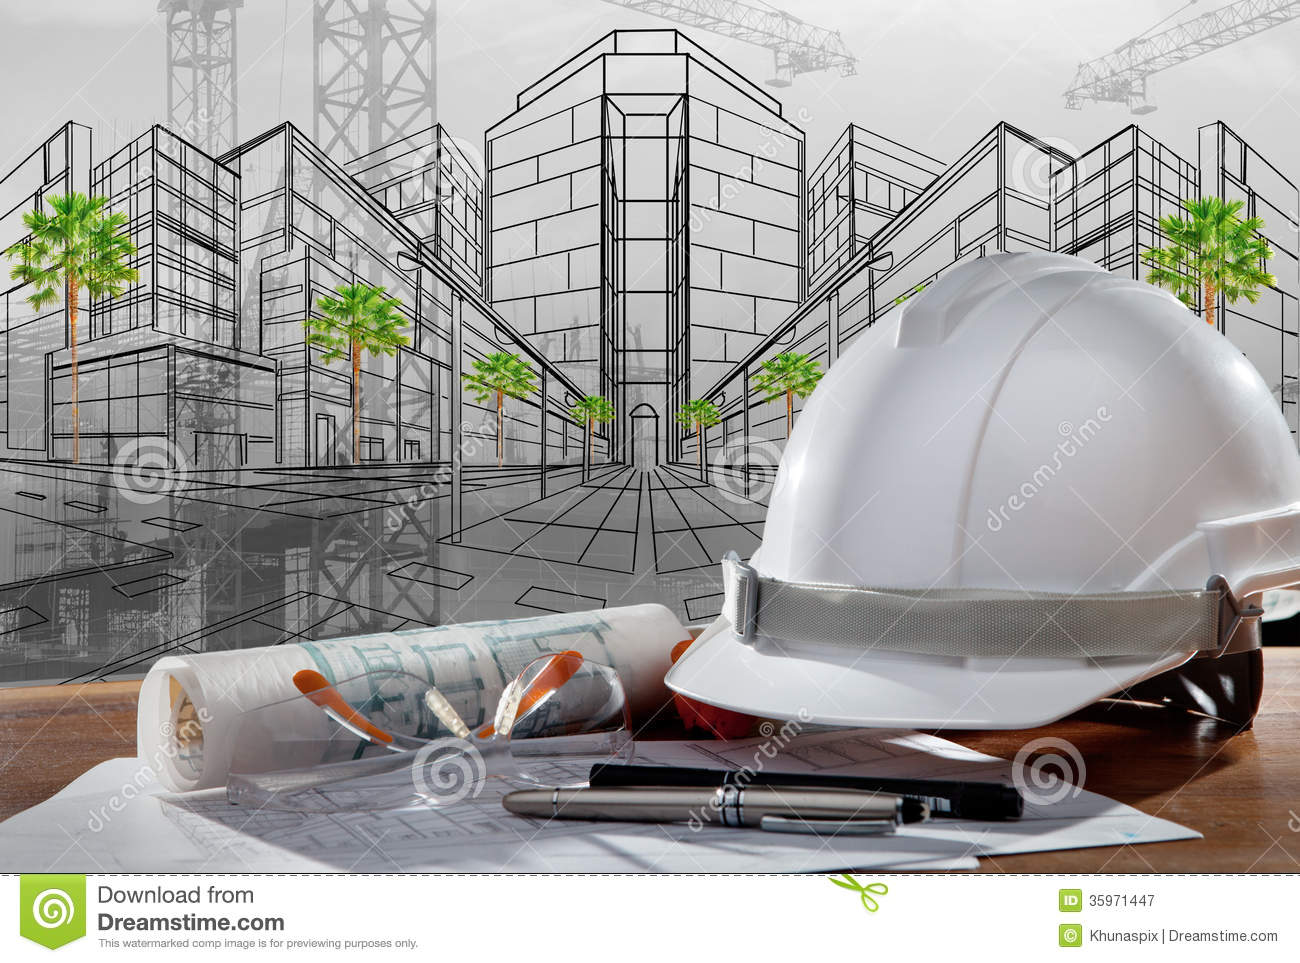 construction safety essay To attain success in an organization it is important to provide good safety culture this custom written essay sample describes main ways of doing it.